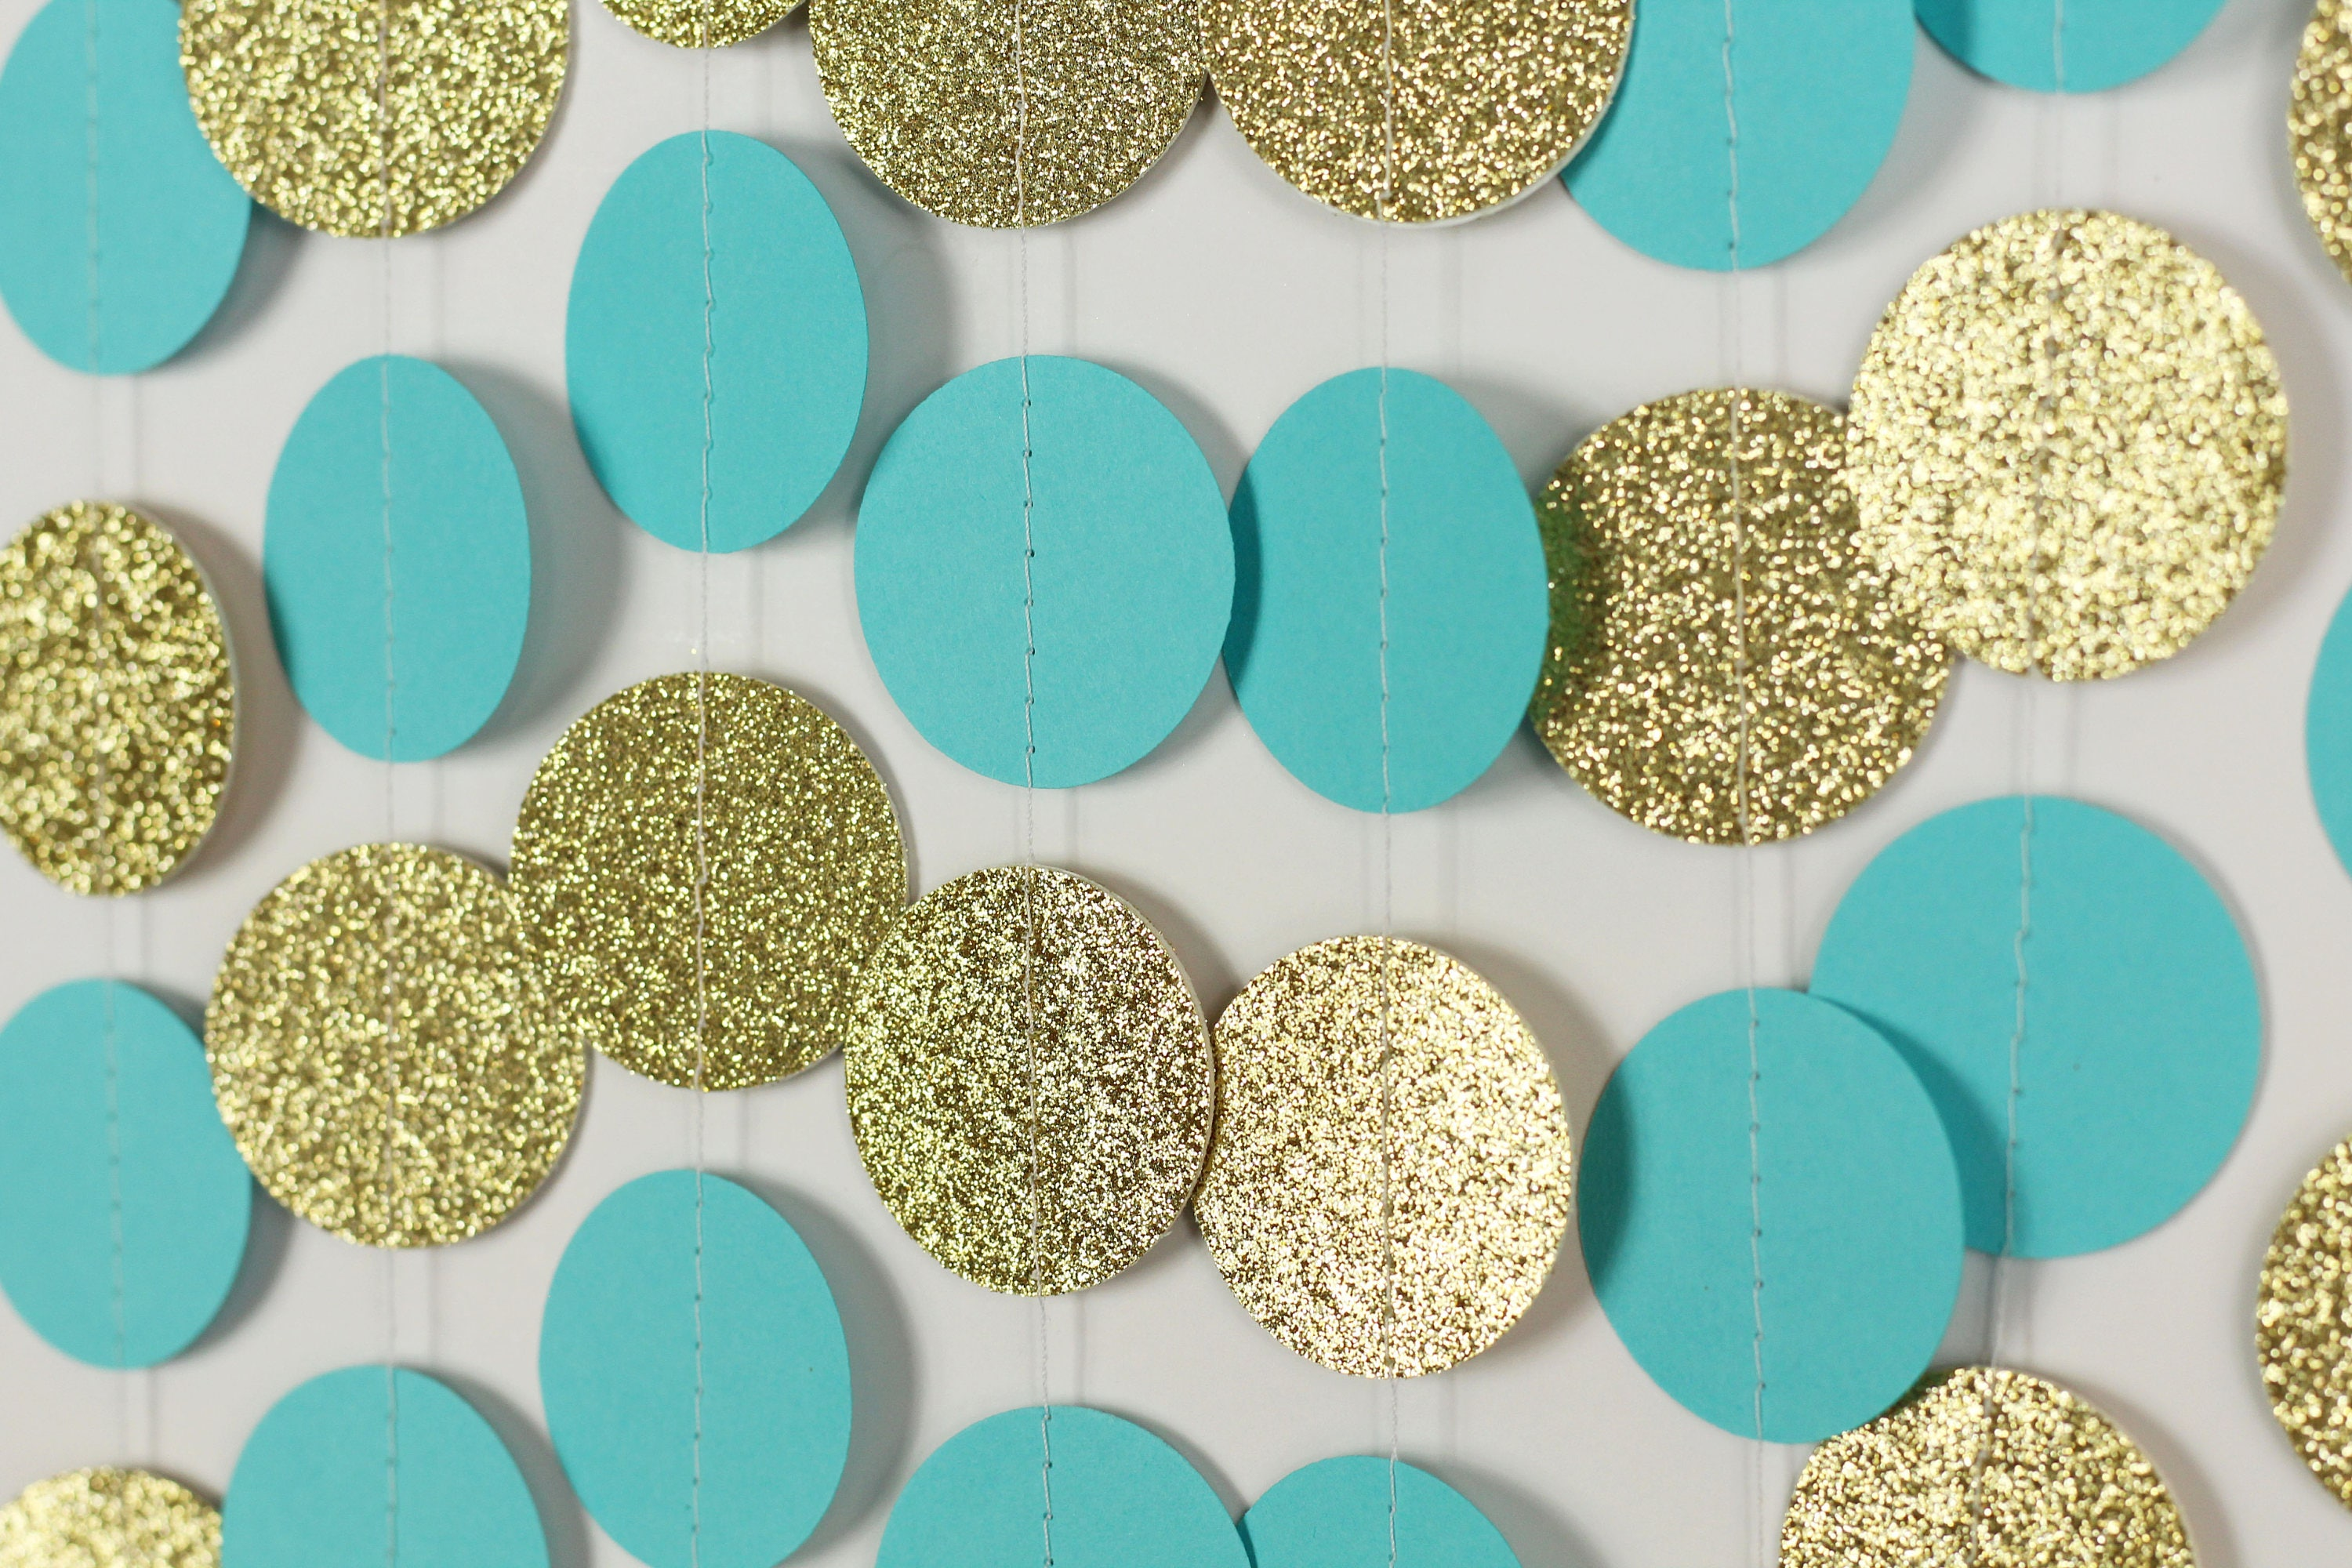 Turquoise And Gold Glitter Garland Turquoise Wedding Decor Etsy